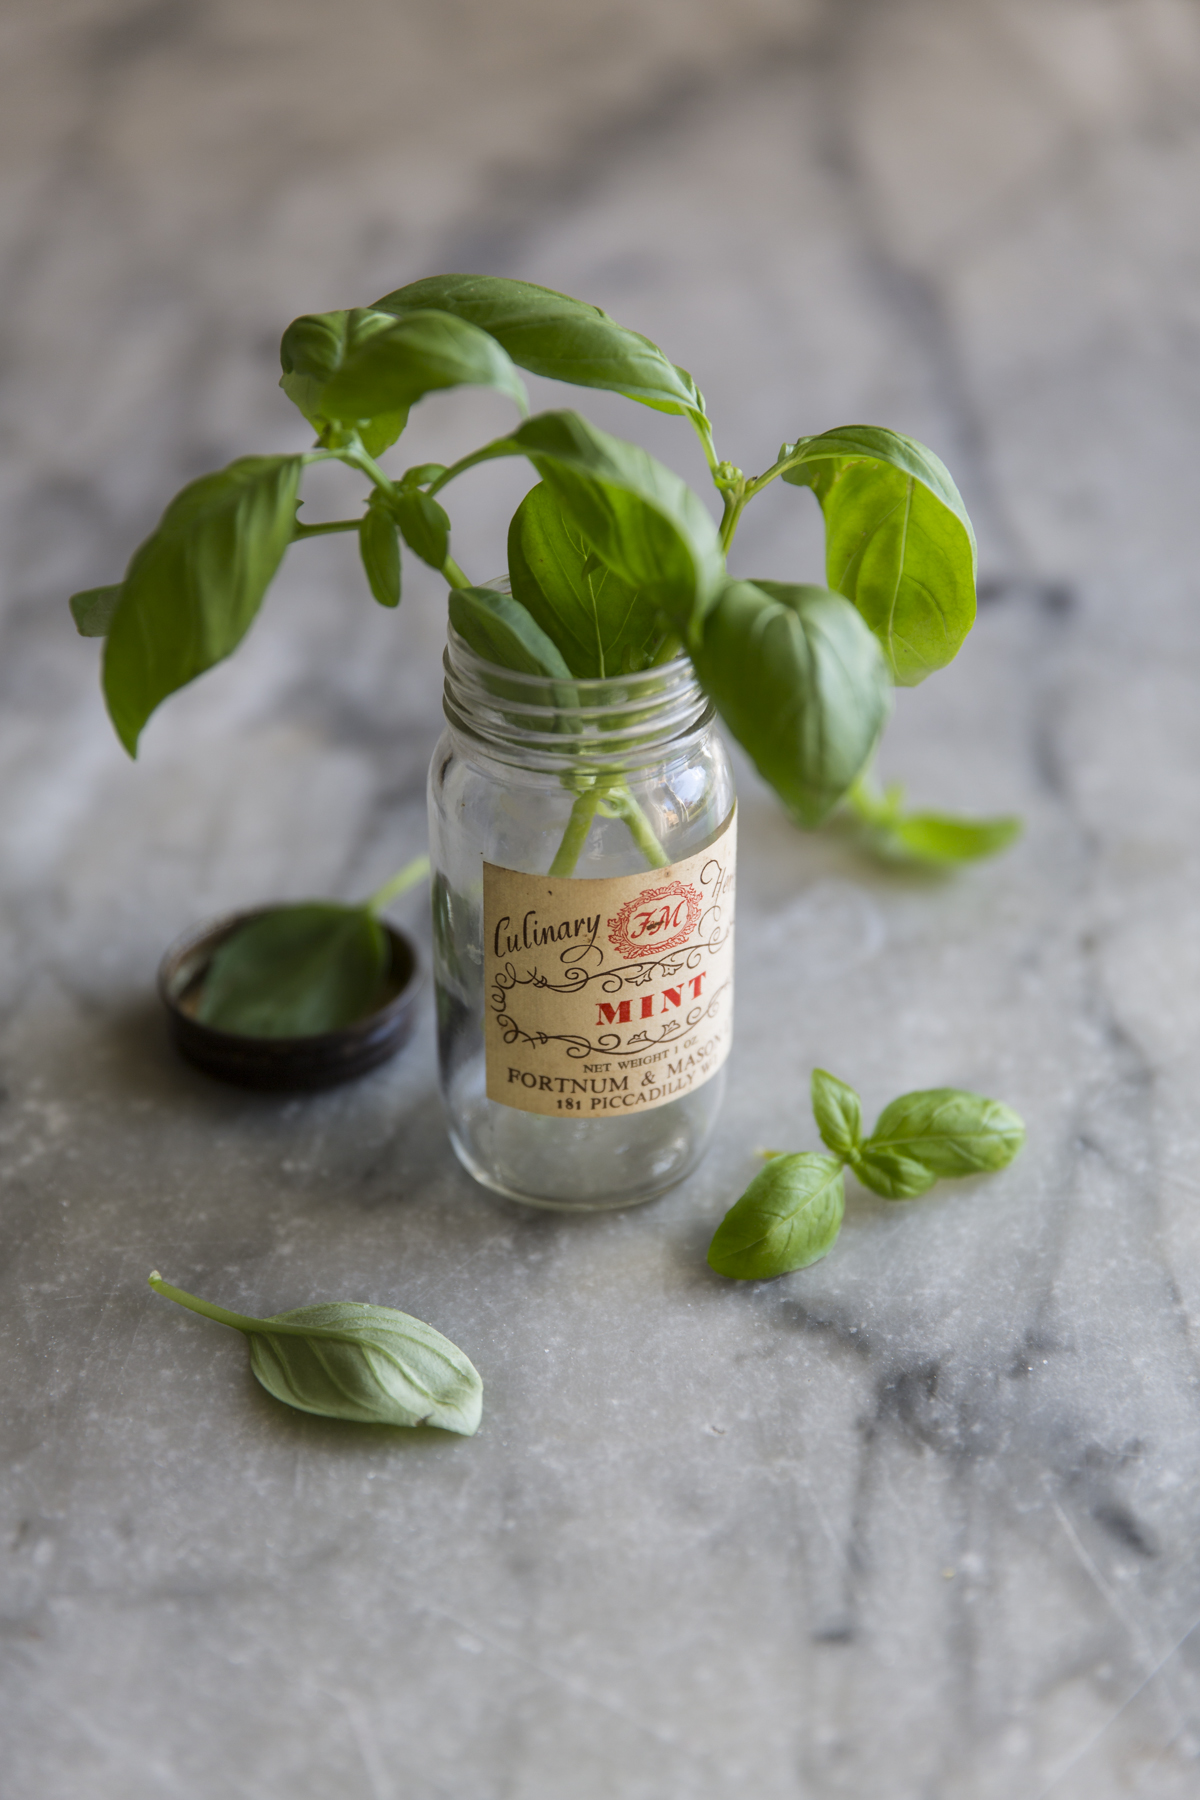 F2.8 Focus is on the jar label, note the basil in the lid and behind are completely out of focus as are the leaves above the label.